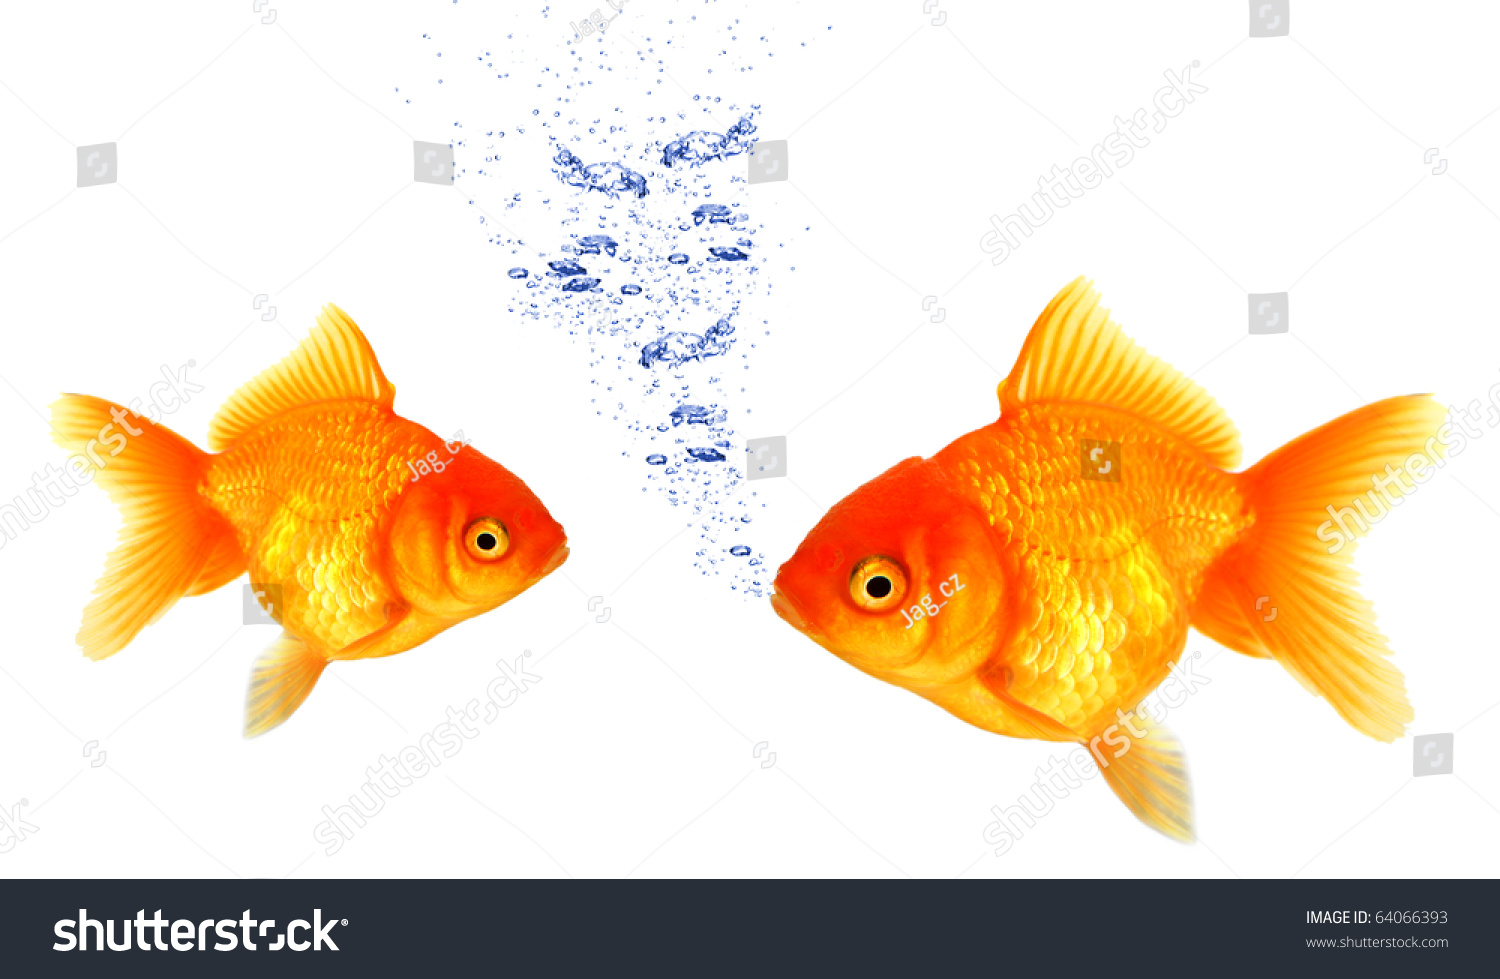 Golden fish breathing under water stock photo 64066393 for How do fish breathe underwater